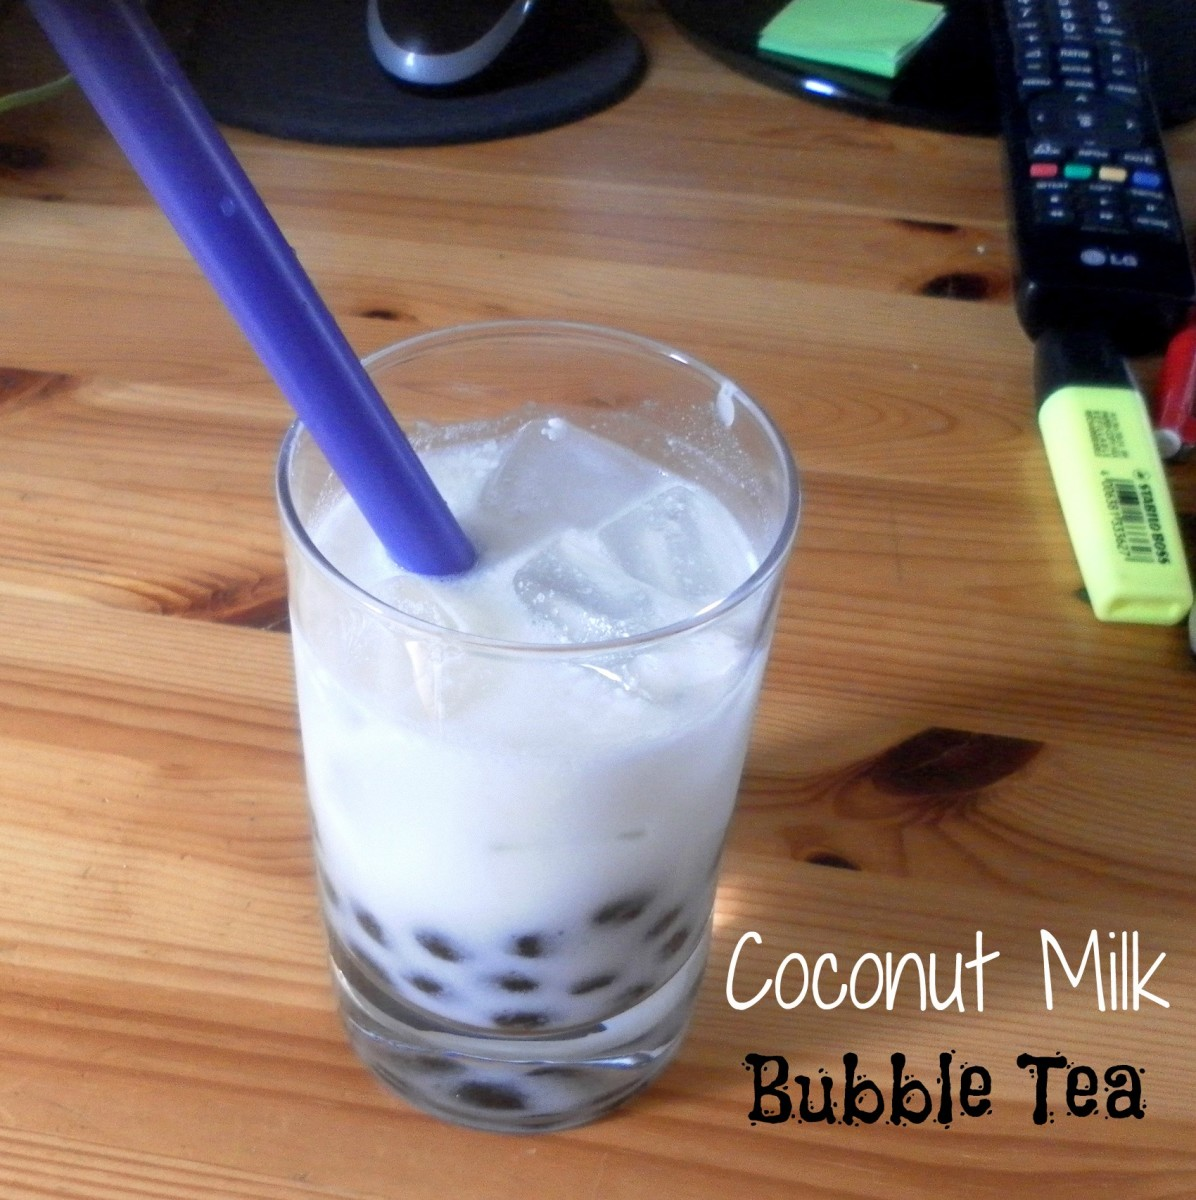 Another fun DIY bubble tea uses coconut milk as a base.